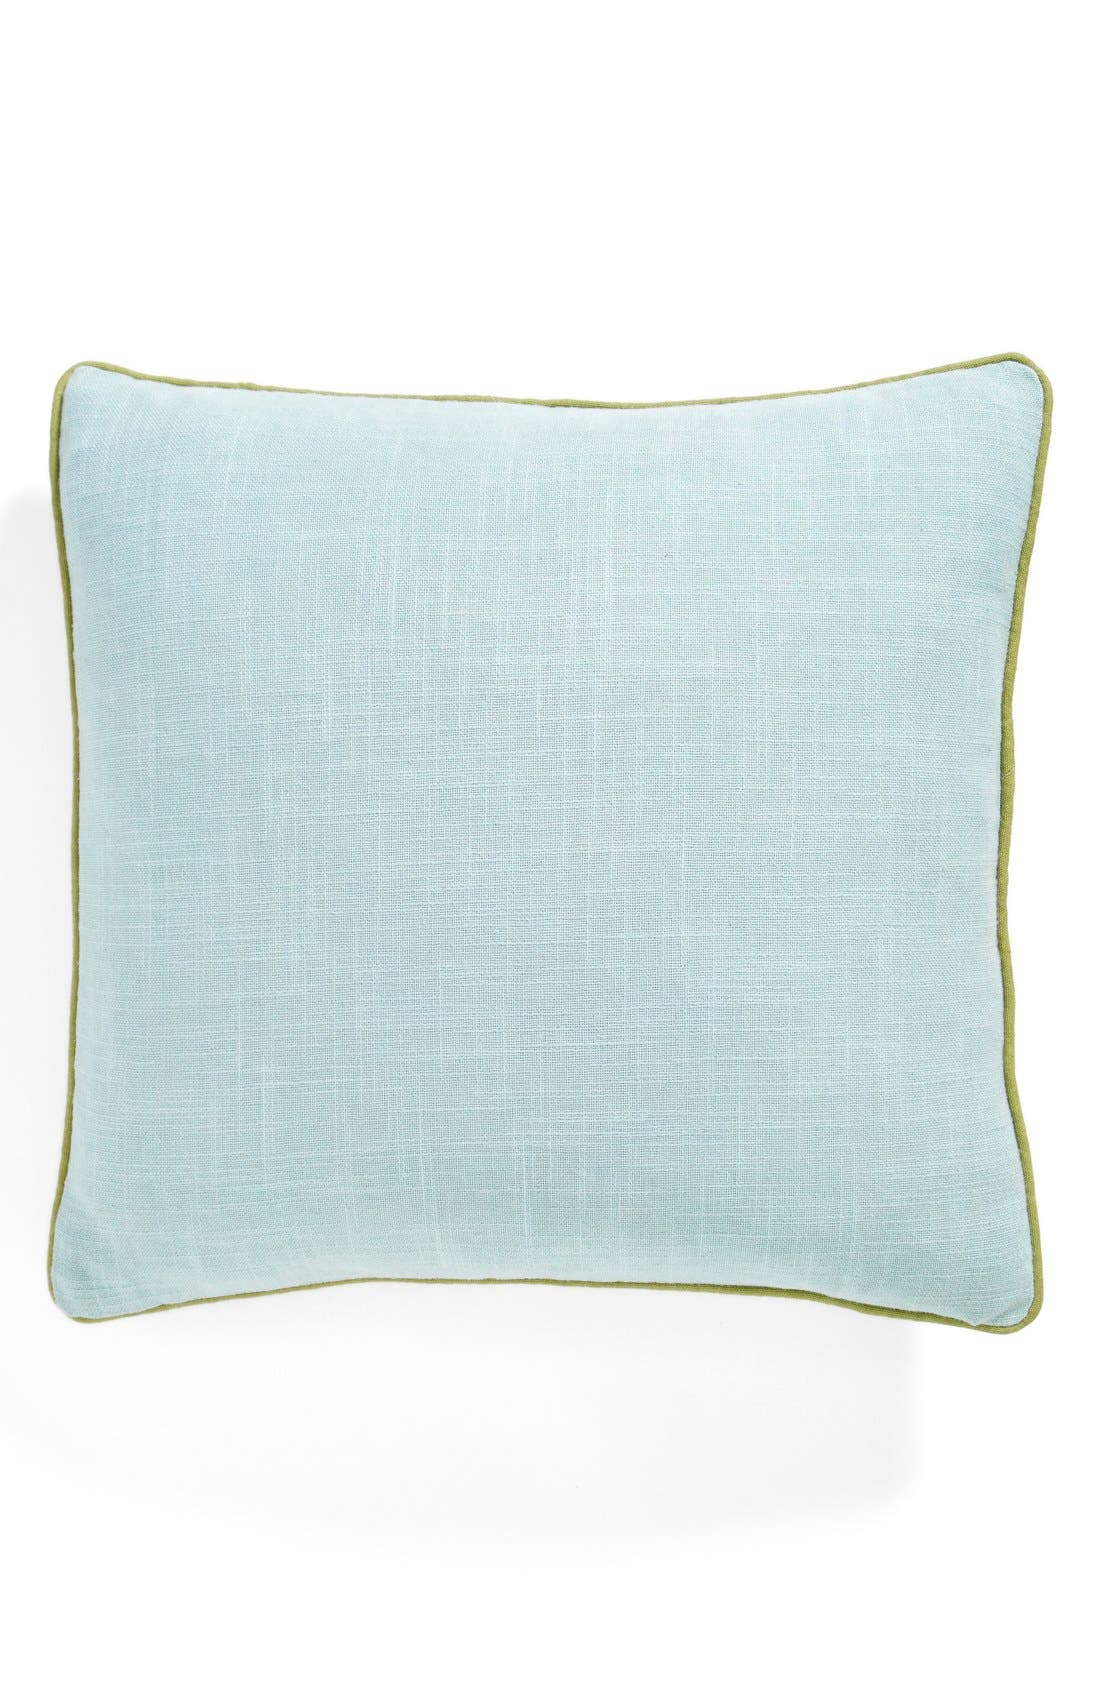 Main Image - Nordstrom at Home 'Erin' Pillow